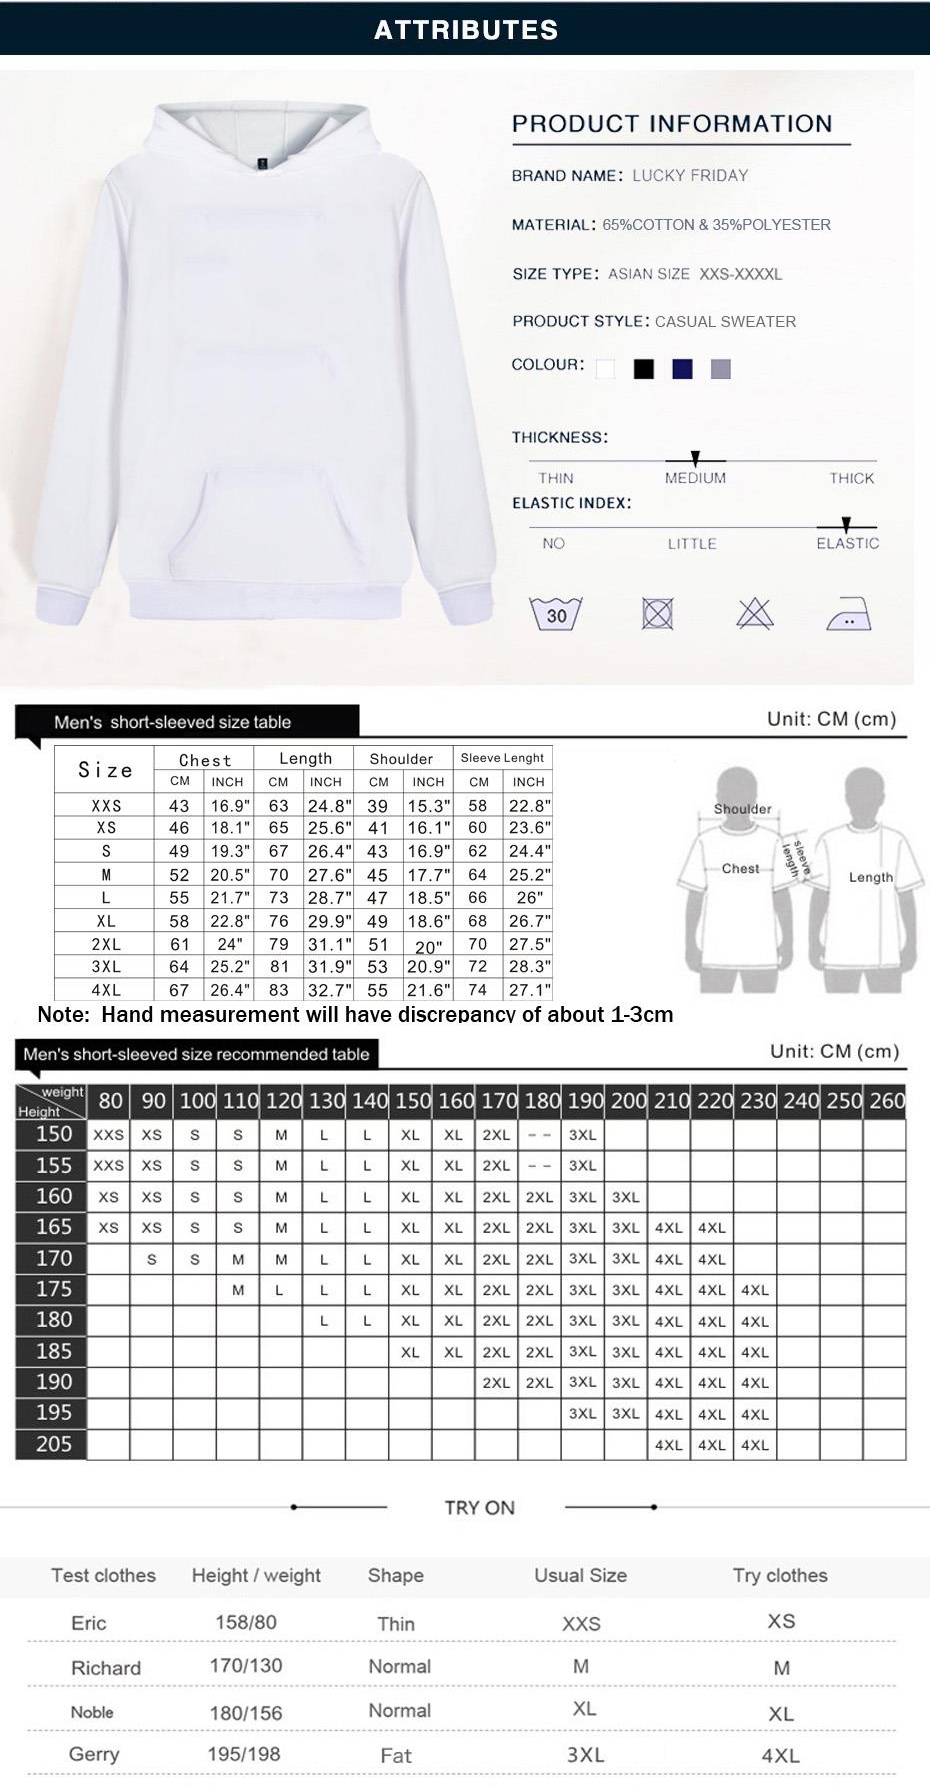 HTB1q78VhgfH8KJjy1zcq6ATzpXan - 2018 Merry Christmas Design mens oversized hoodies and sweatshirts  Black  tracksuit survetement 4XL moletom Hooded men/women